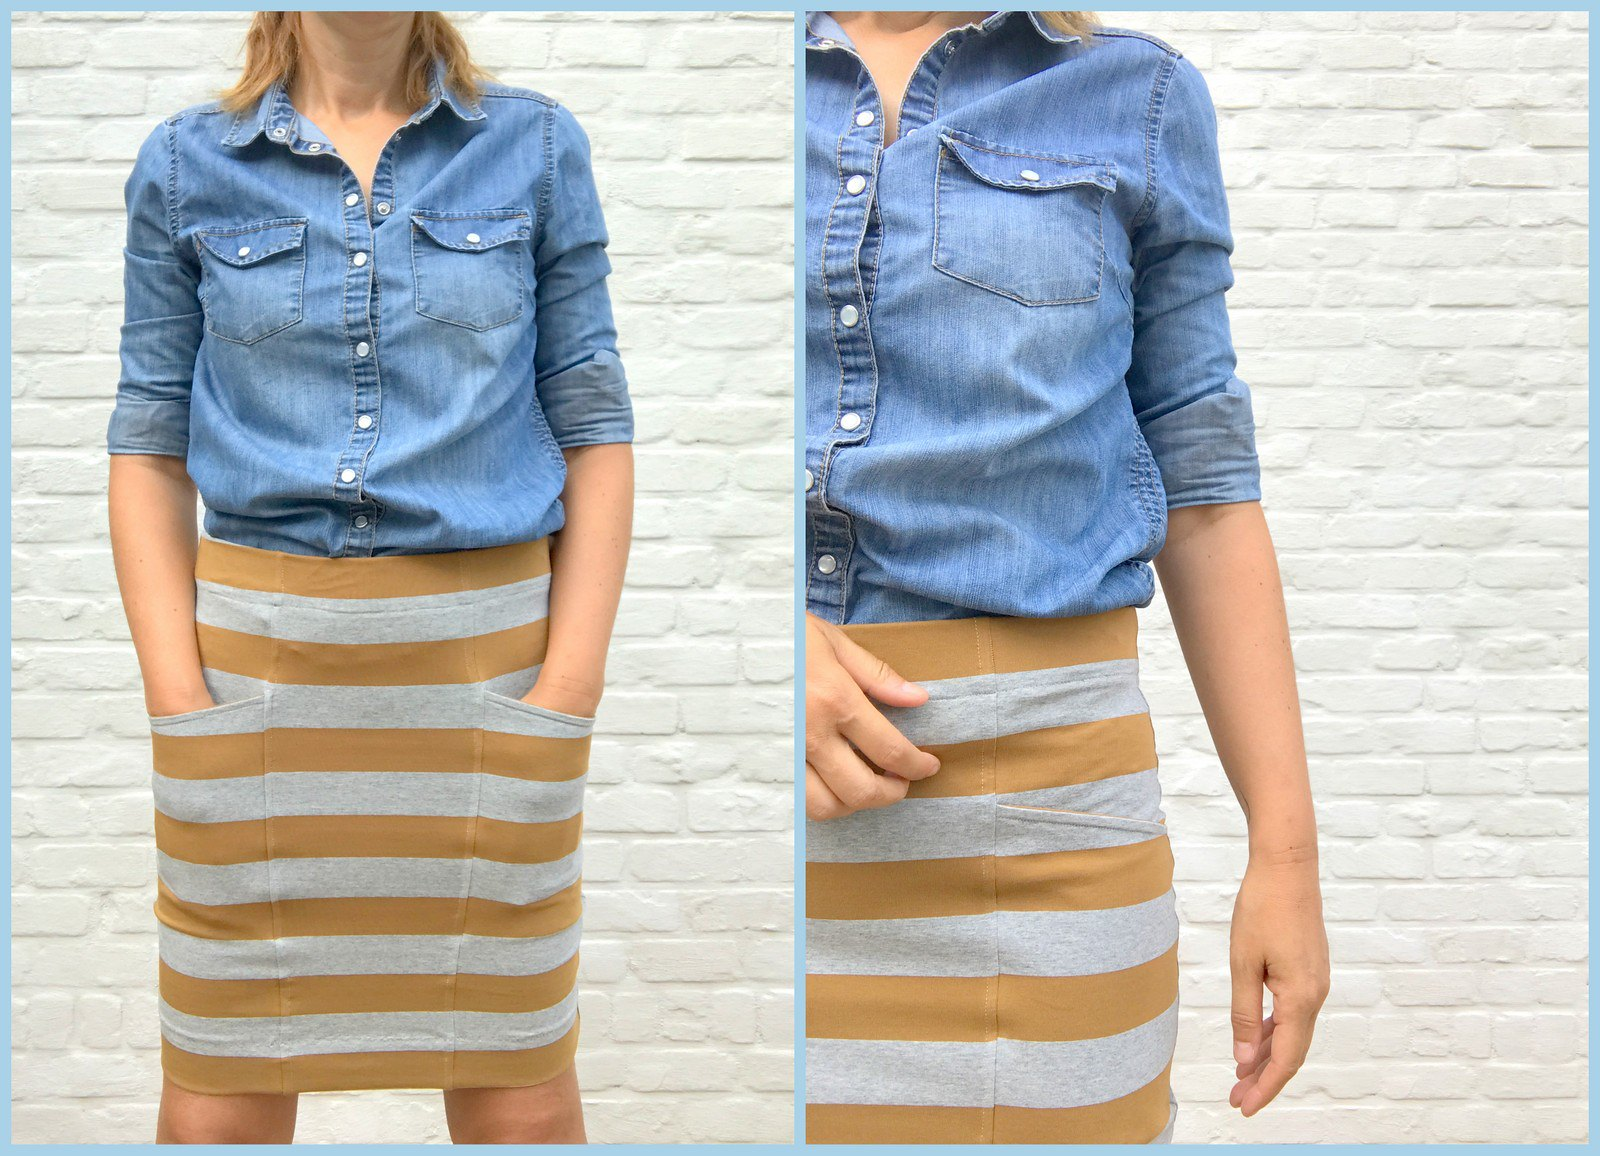 jersey skirt (collage)